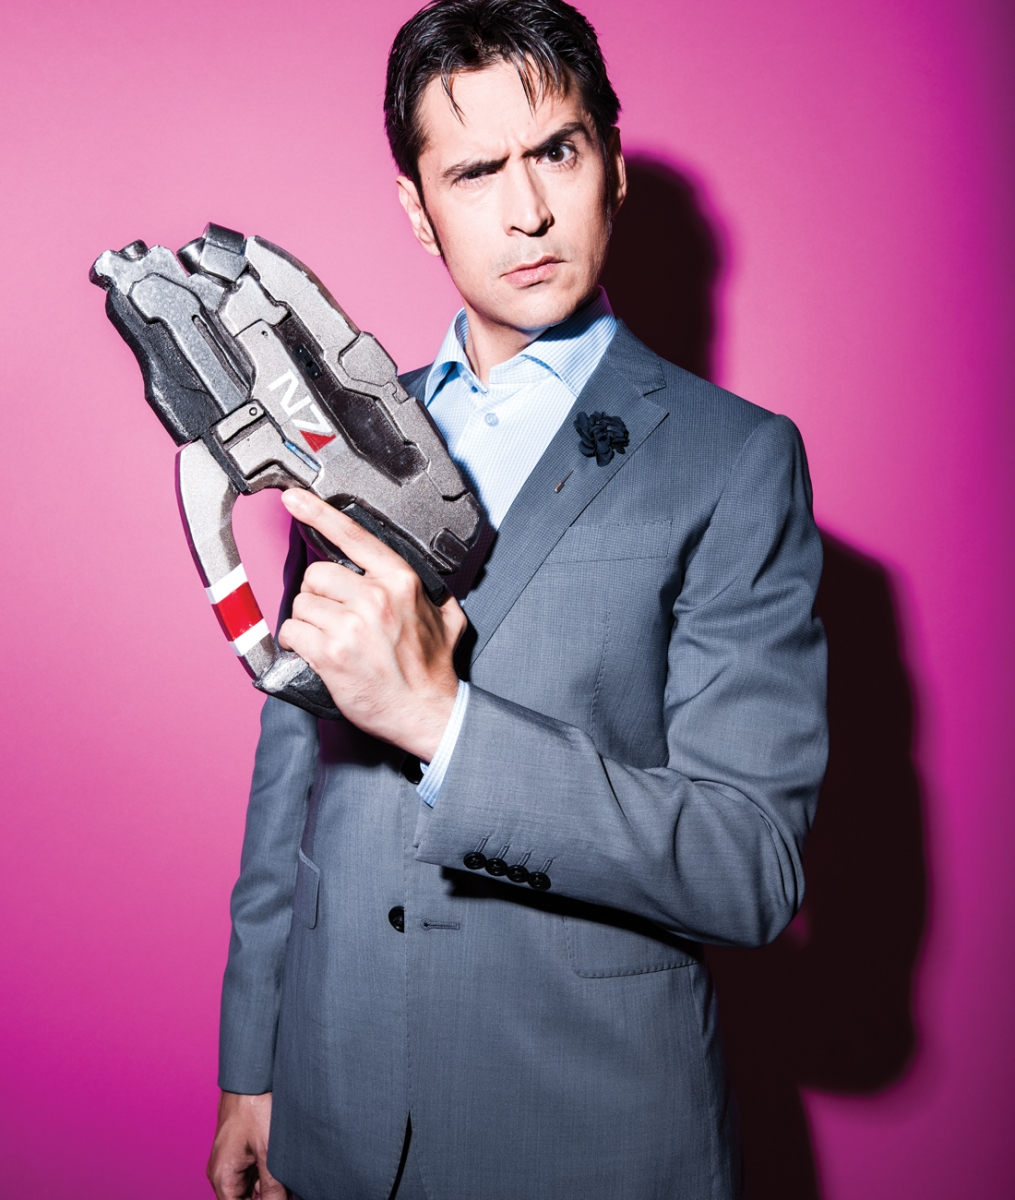 FOR-WEB_20150805_1271_Mark_Meer_1692_8bt